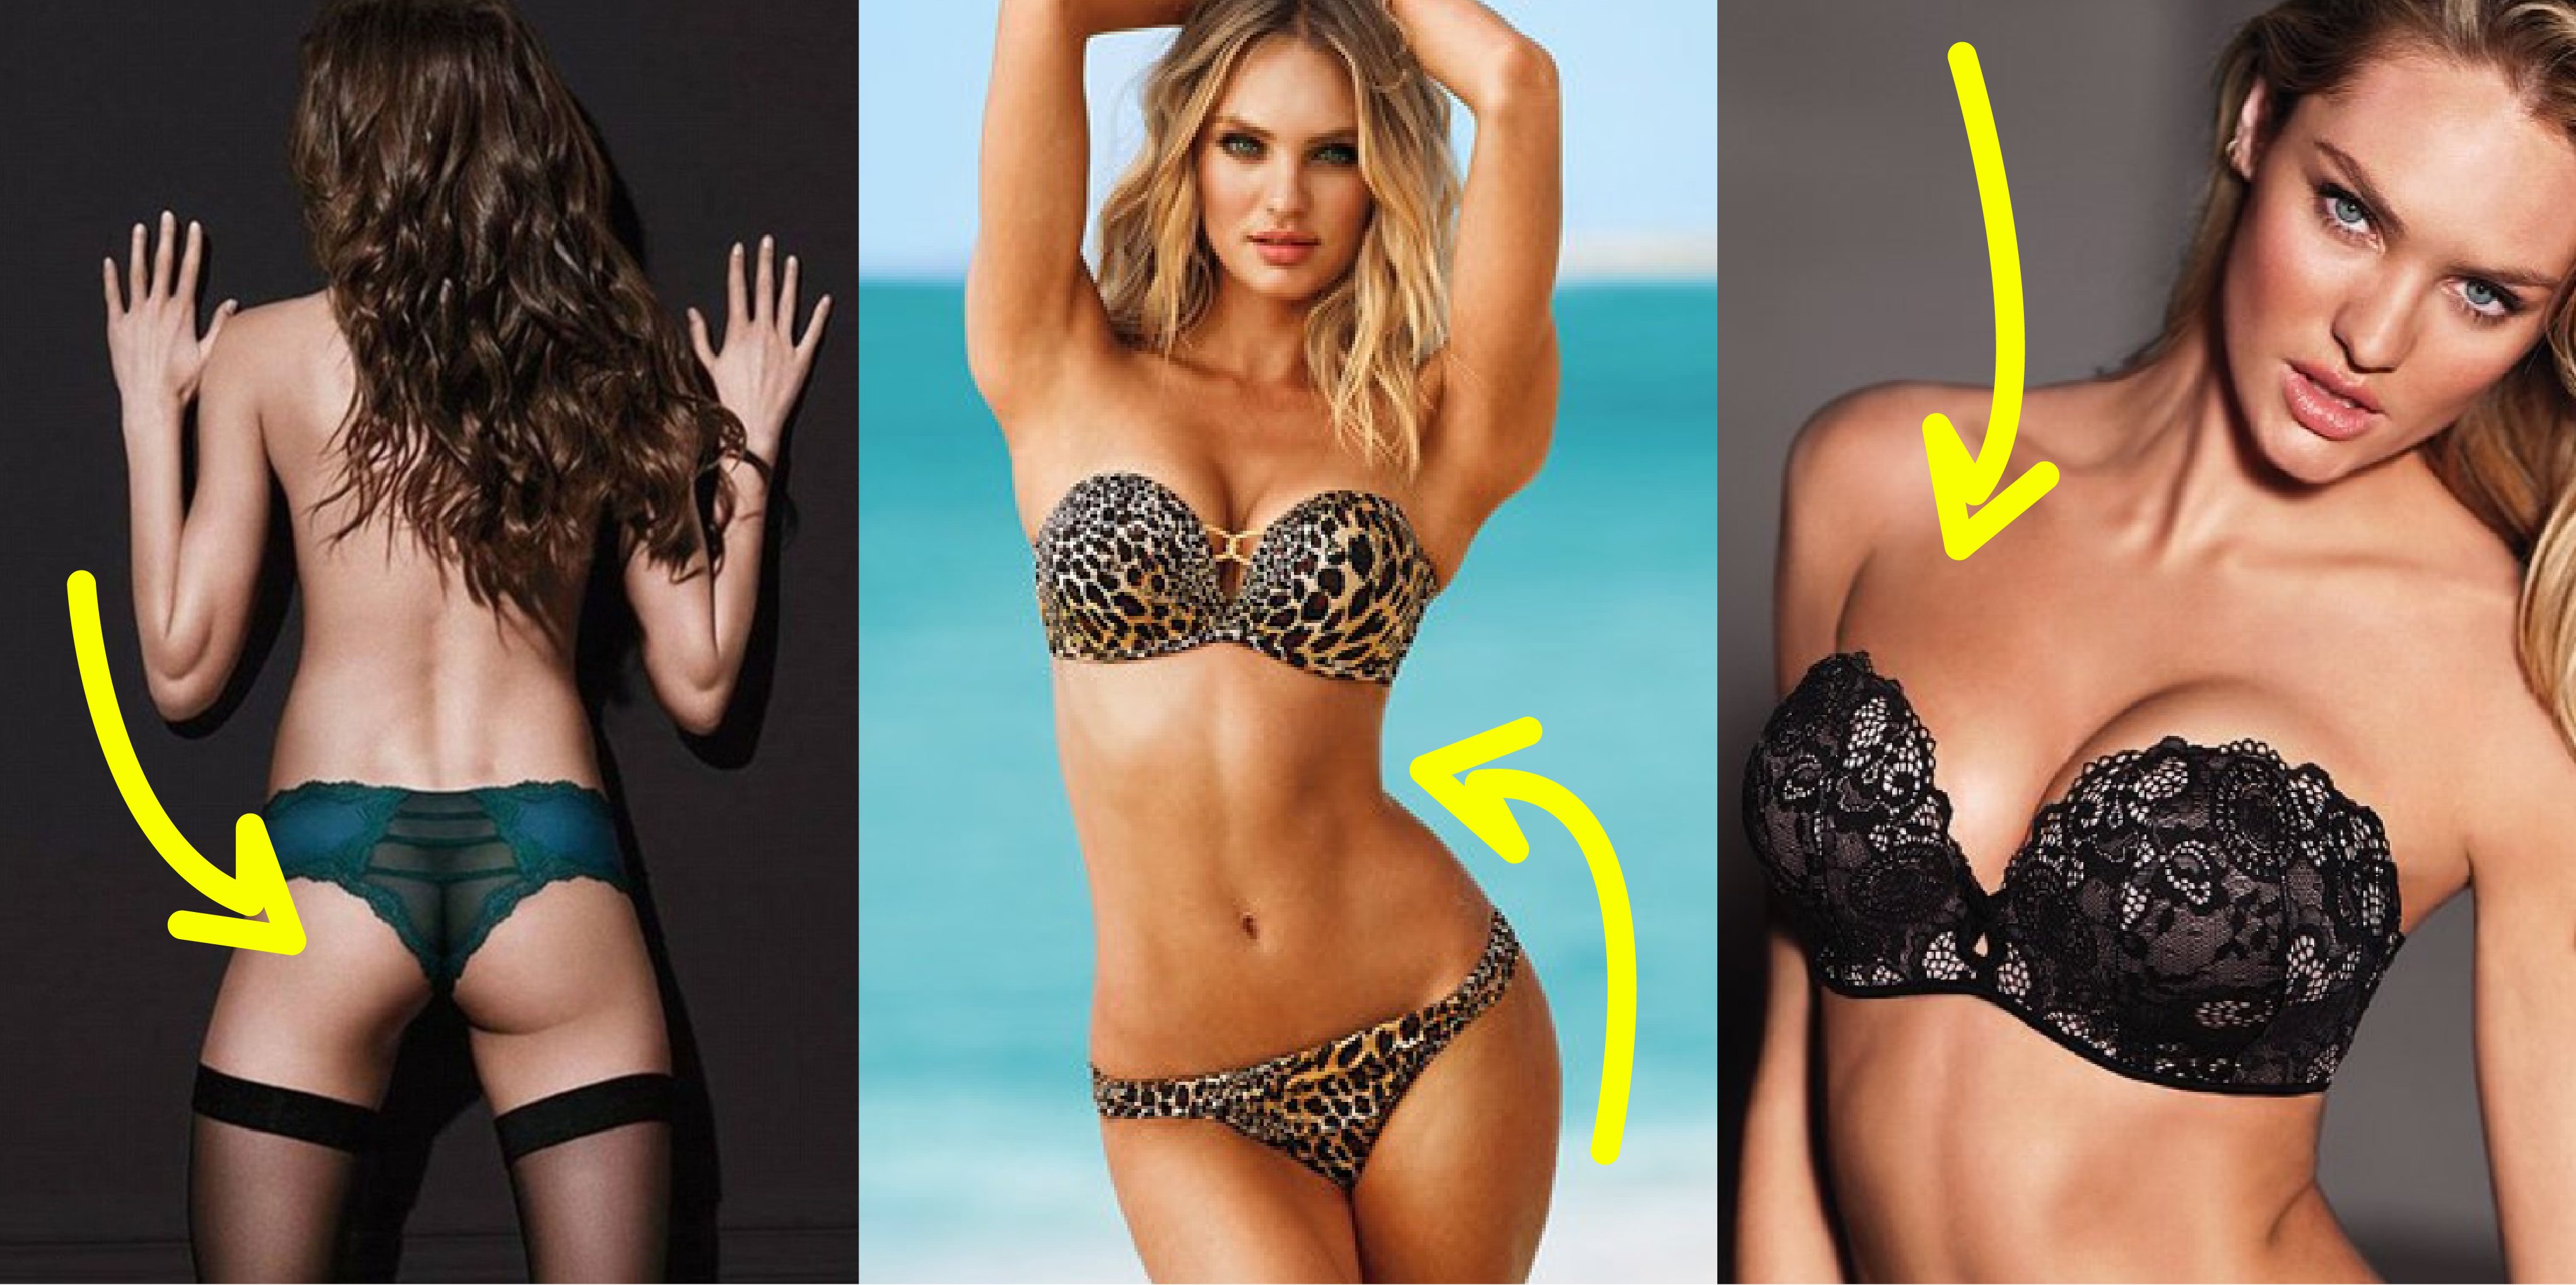 The 10 Most Insane Victoria's Secret Photoshop Fails of ...